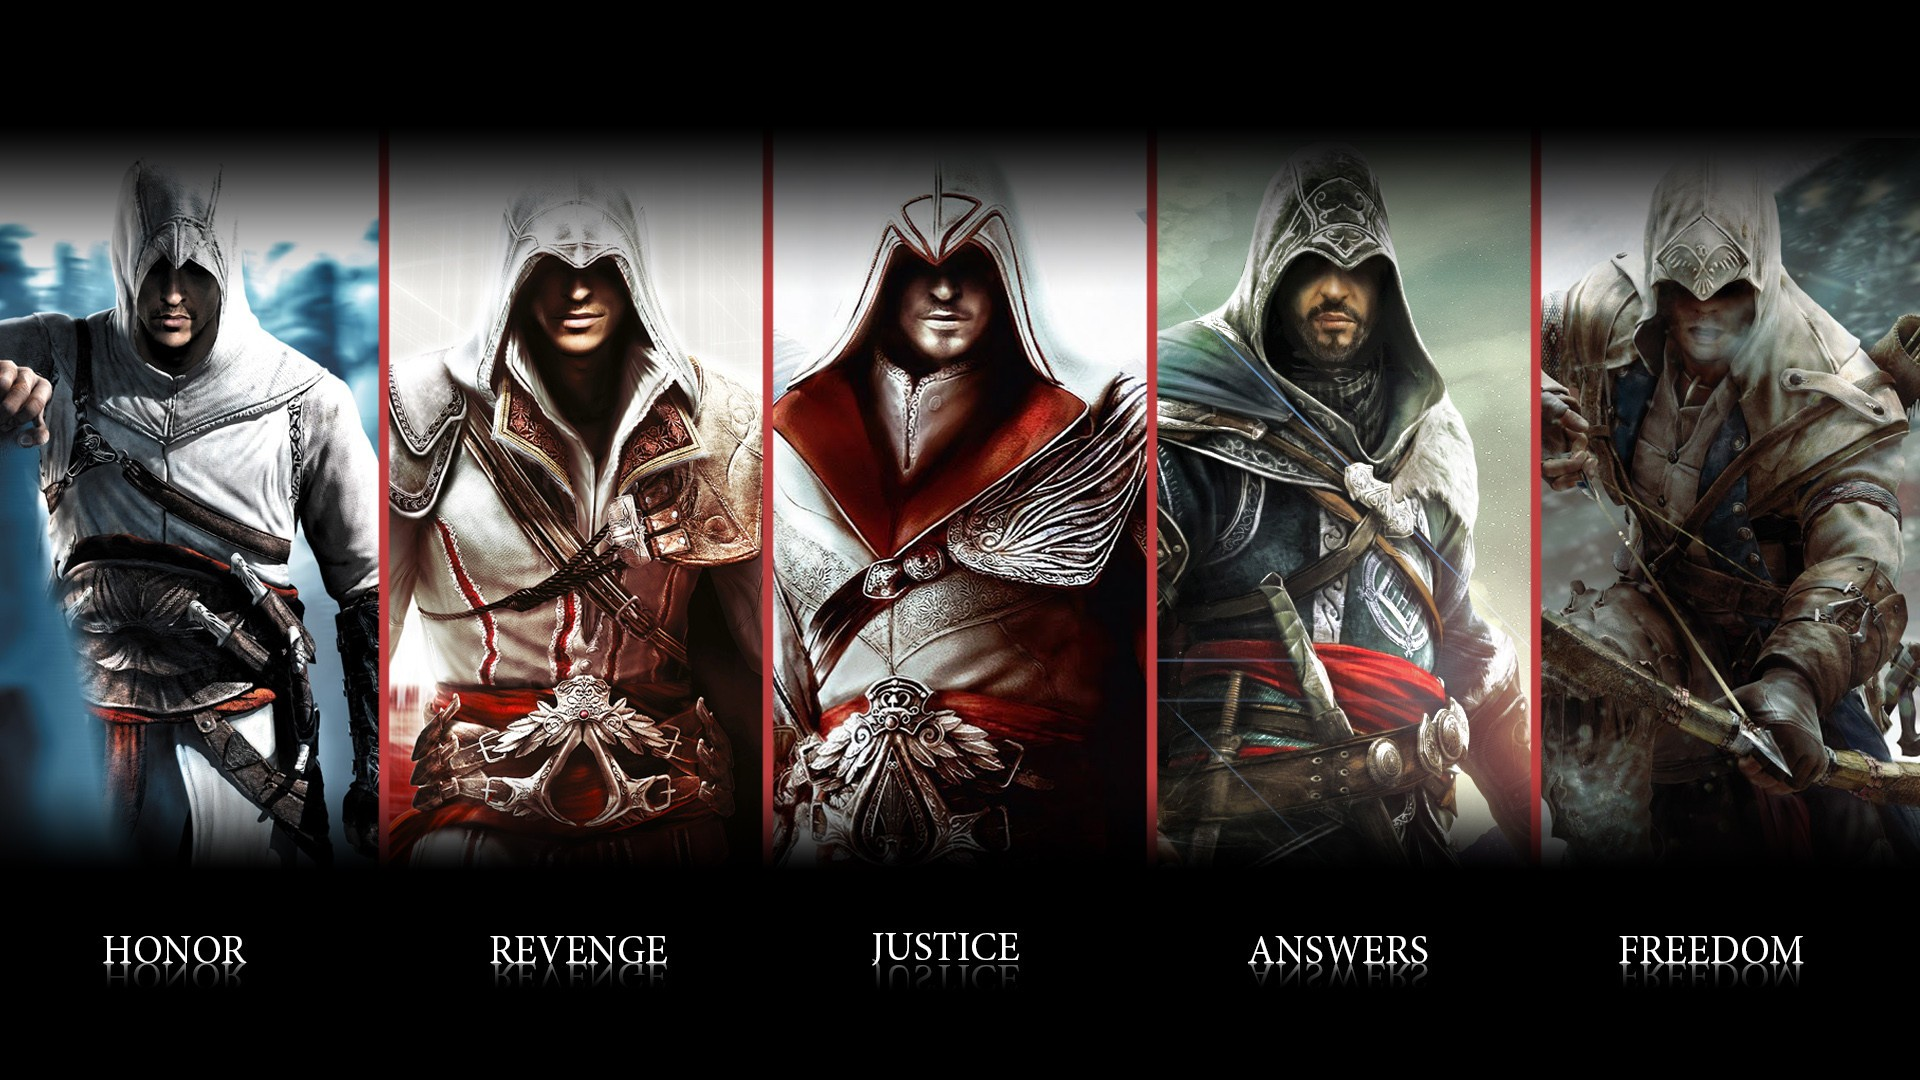 Assassins Creed Desktop Wallpaper Images | Assassins Creed